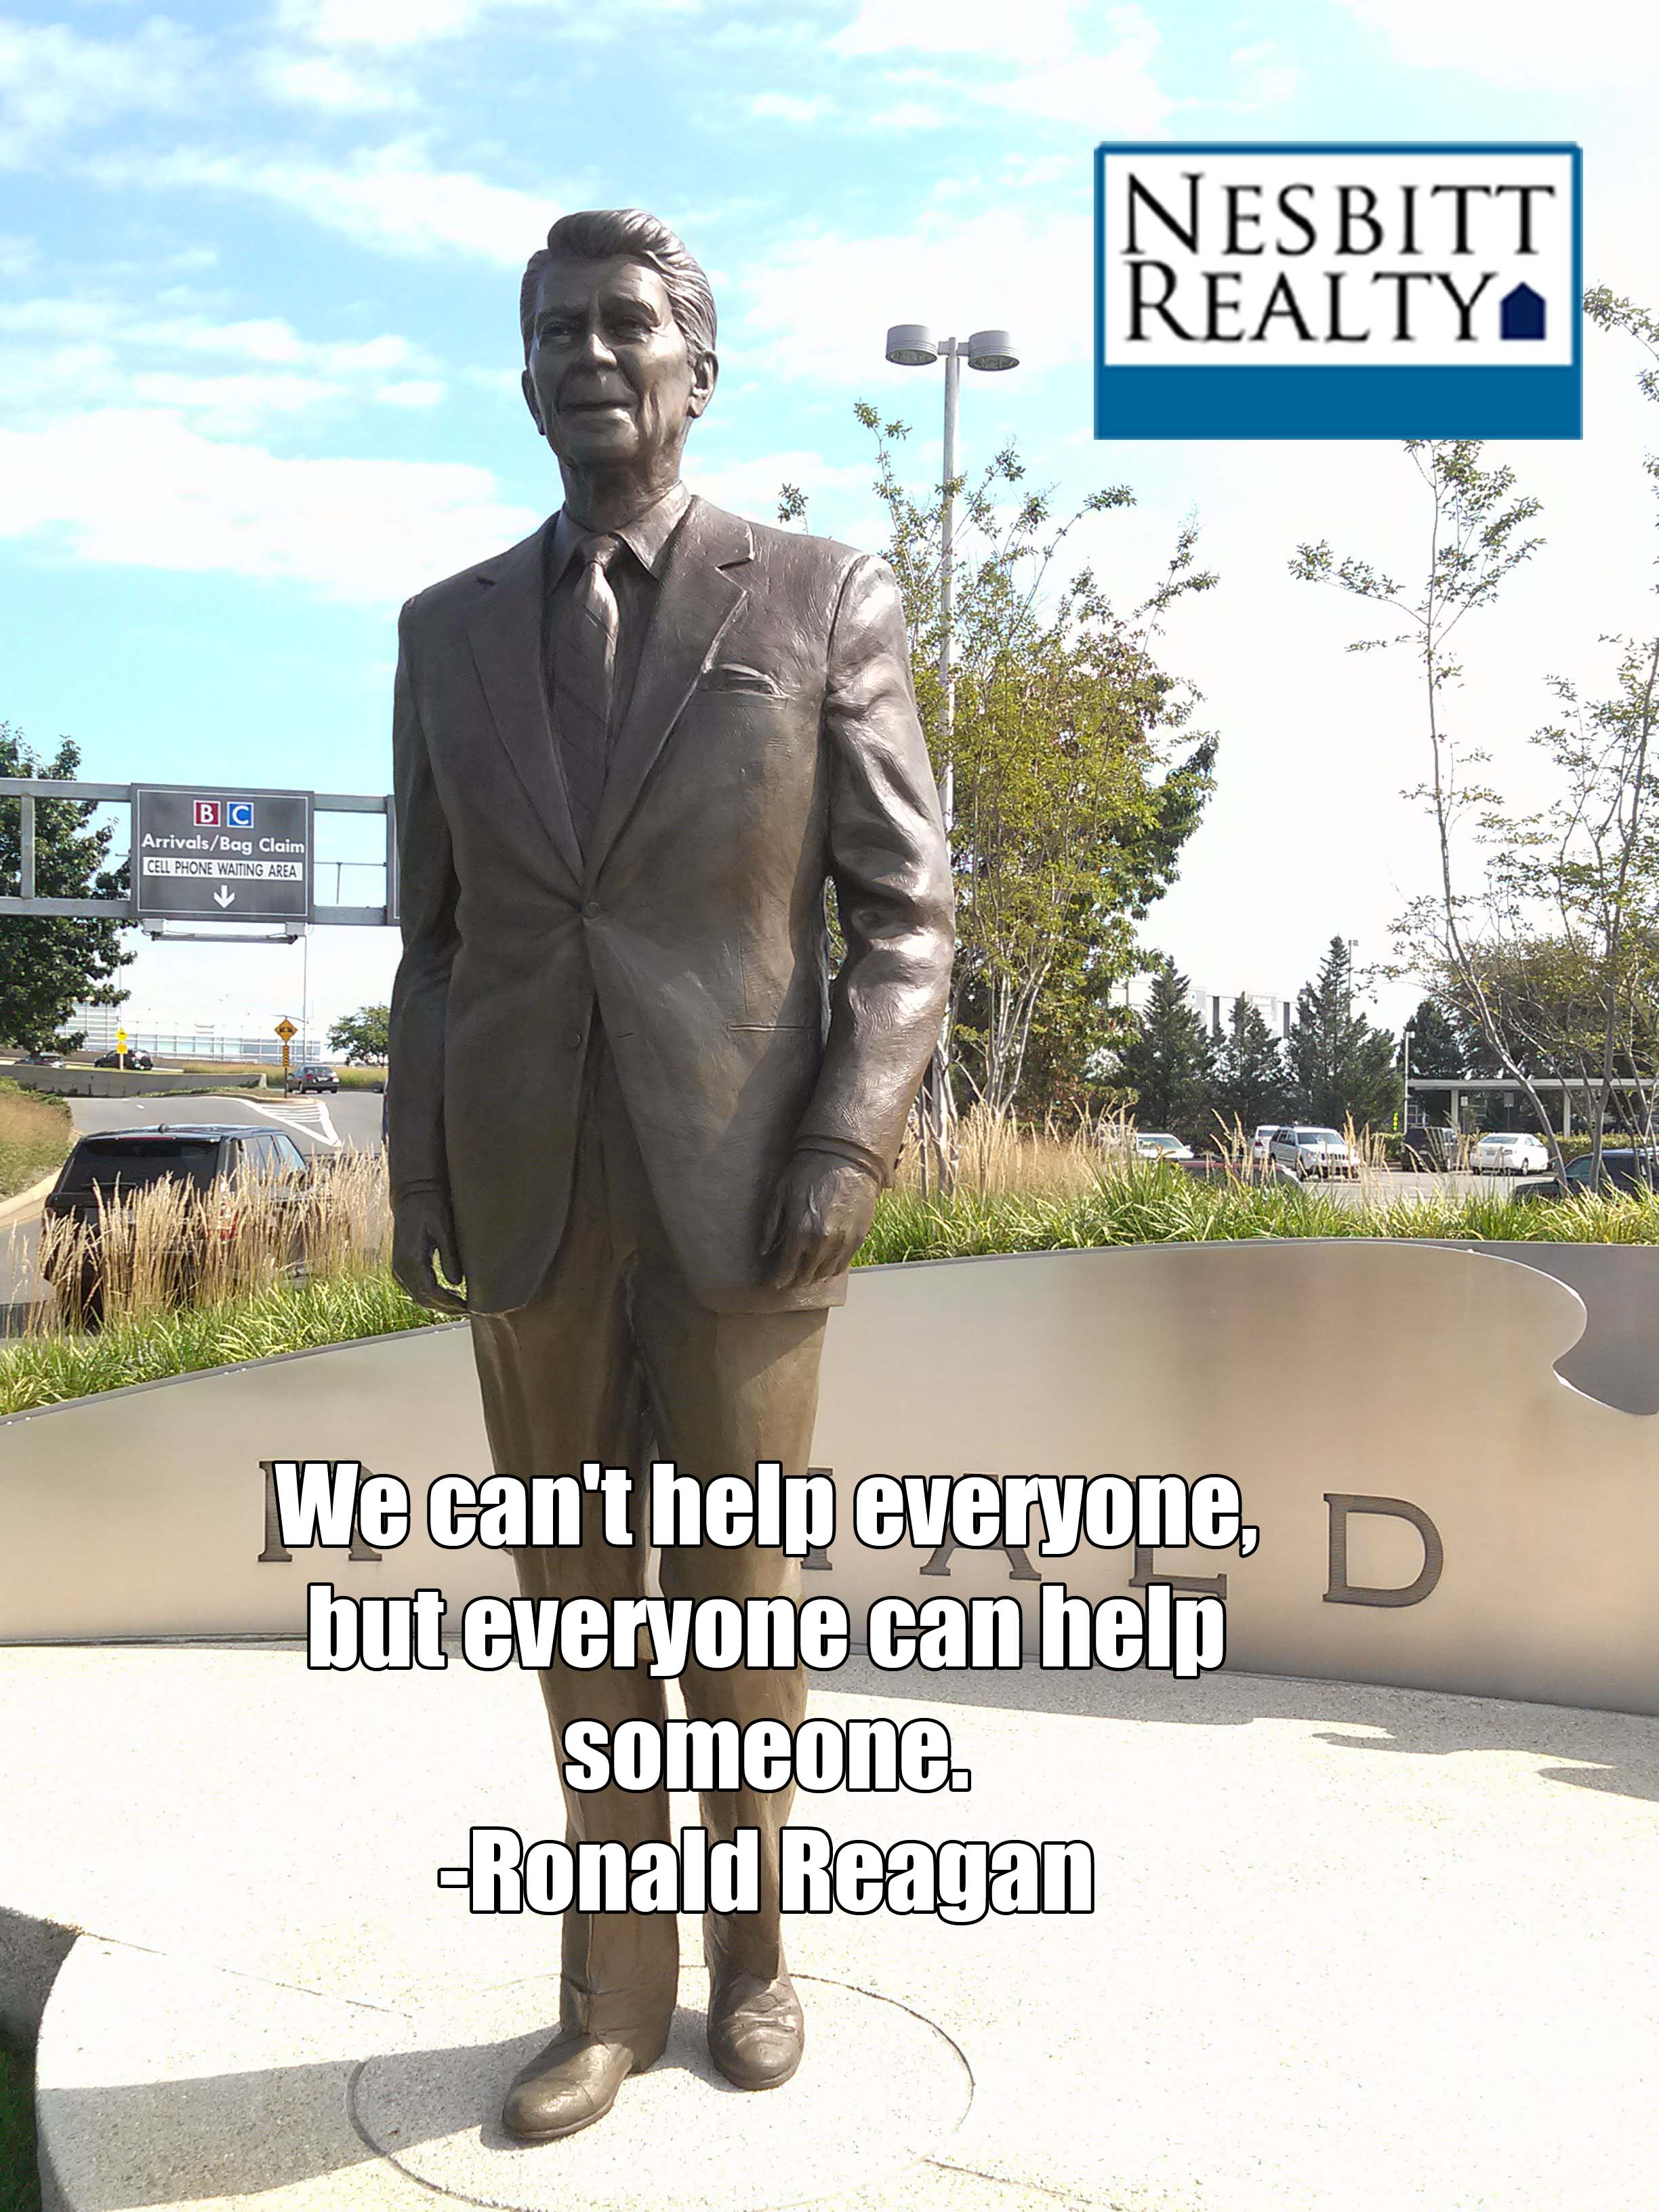 A statue of Ronald Reagan